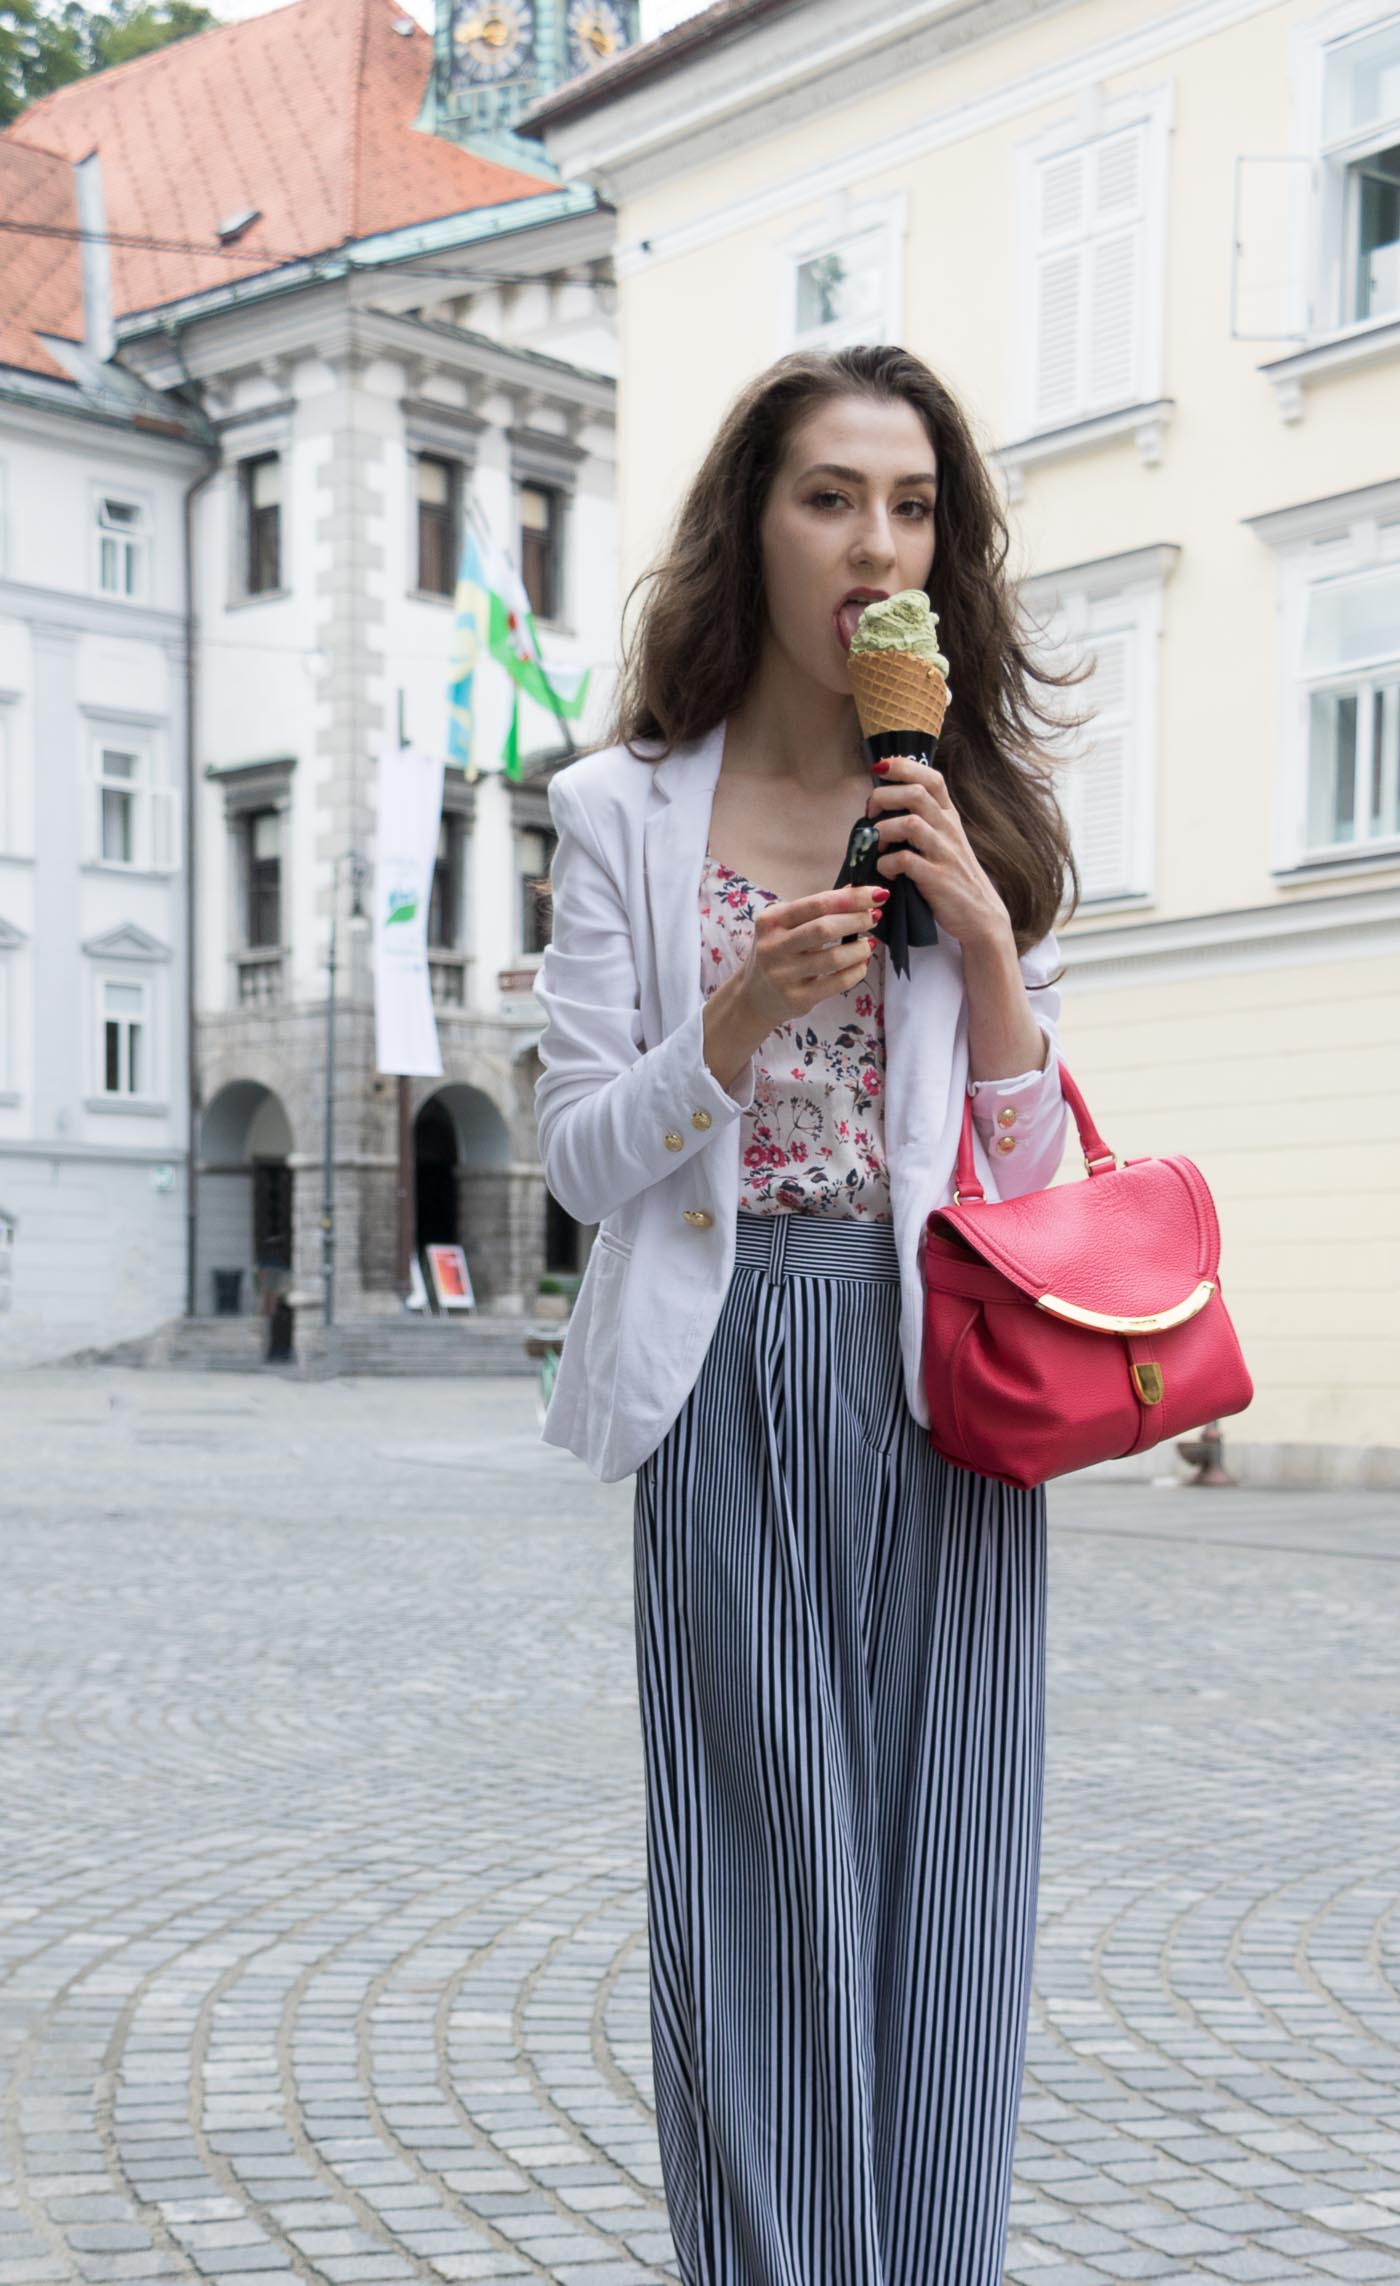 Fashion Blogger Veronika Lipar of Brunette from Wall Street eating pistachio ice cream on the street wearing wide-leg striped Michael Kors pants, white blazer, floral slip top from Stella McCartney and blue Aquazzura sandals